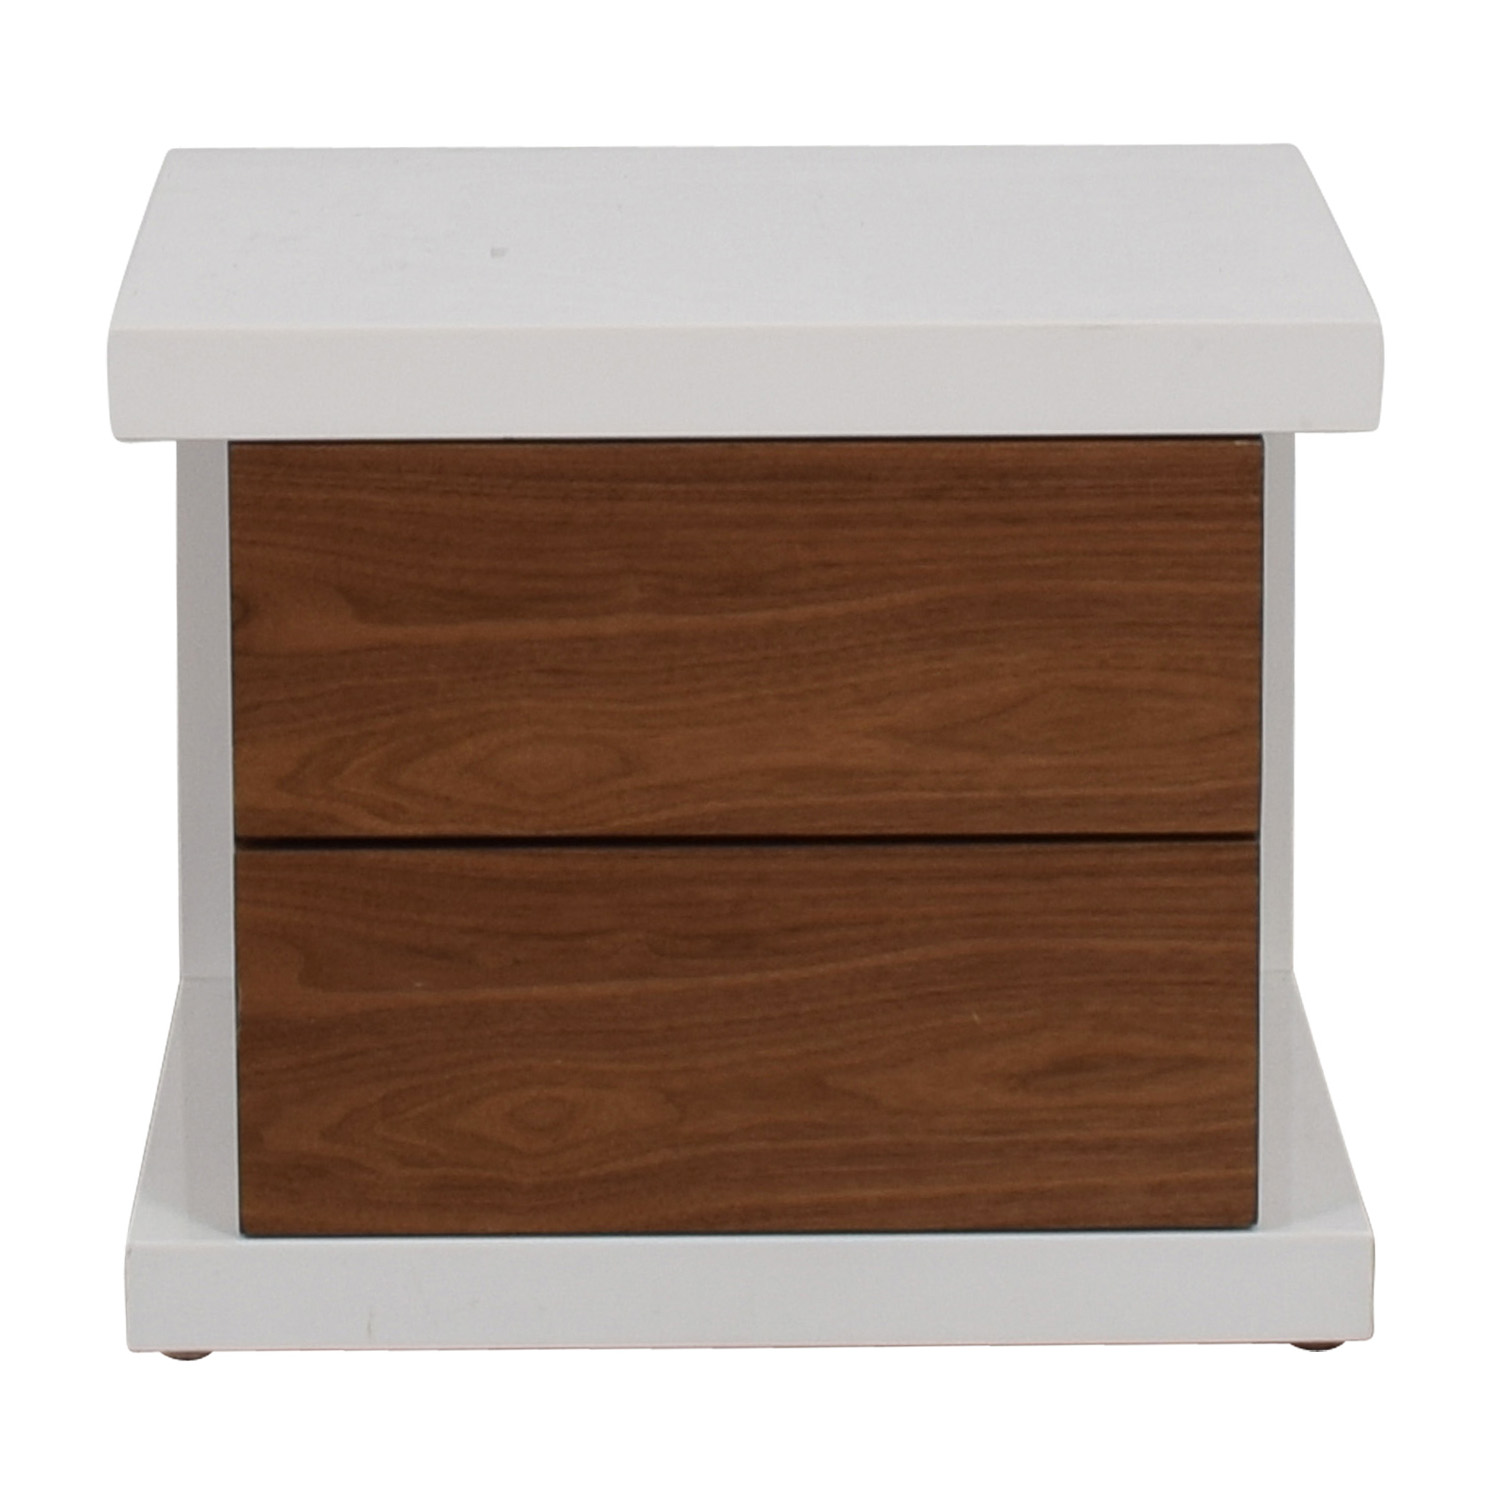 Panagea Pangea Taylor Night Stand price